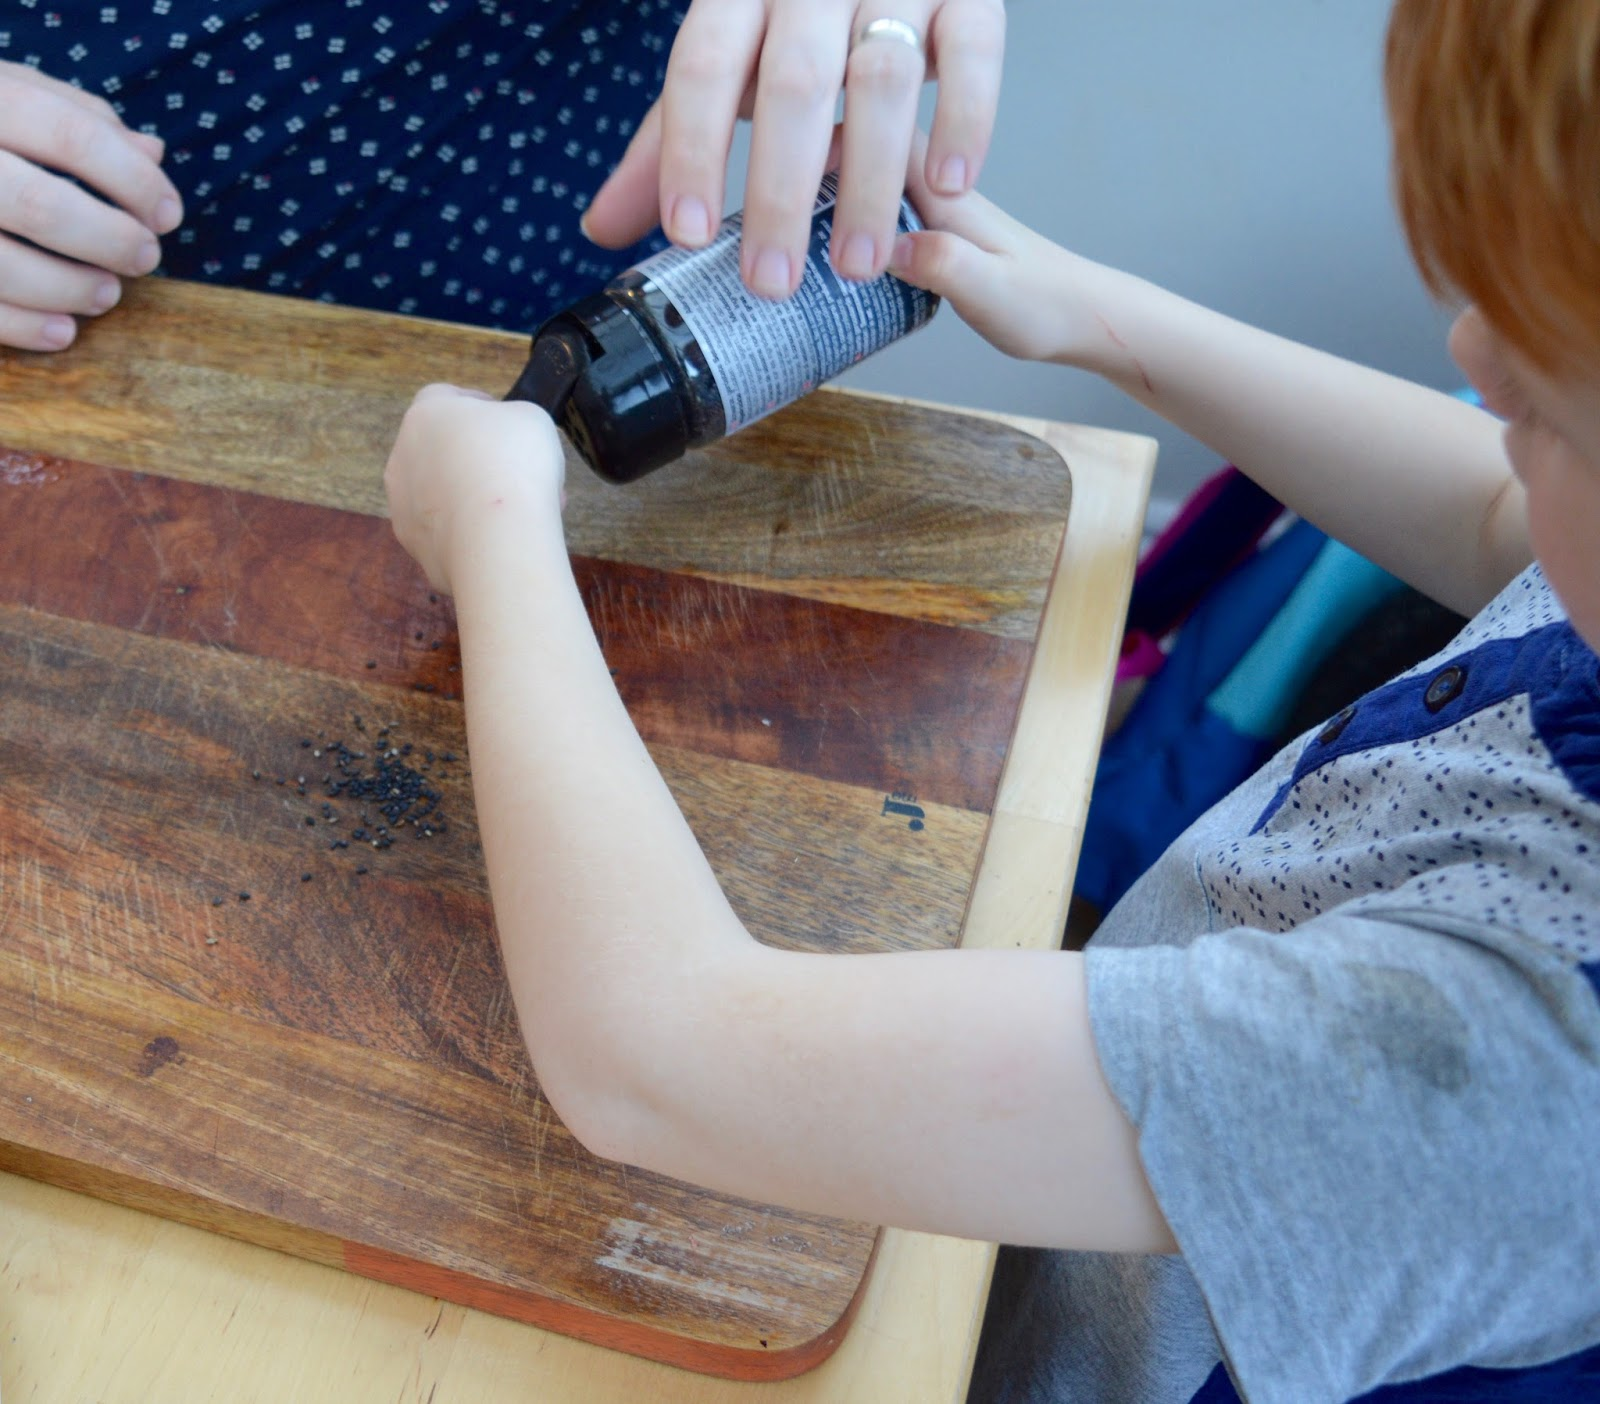 Sushi Making With Kids - A Tutorial for Beginners with Yutaka - using black sesame seeds